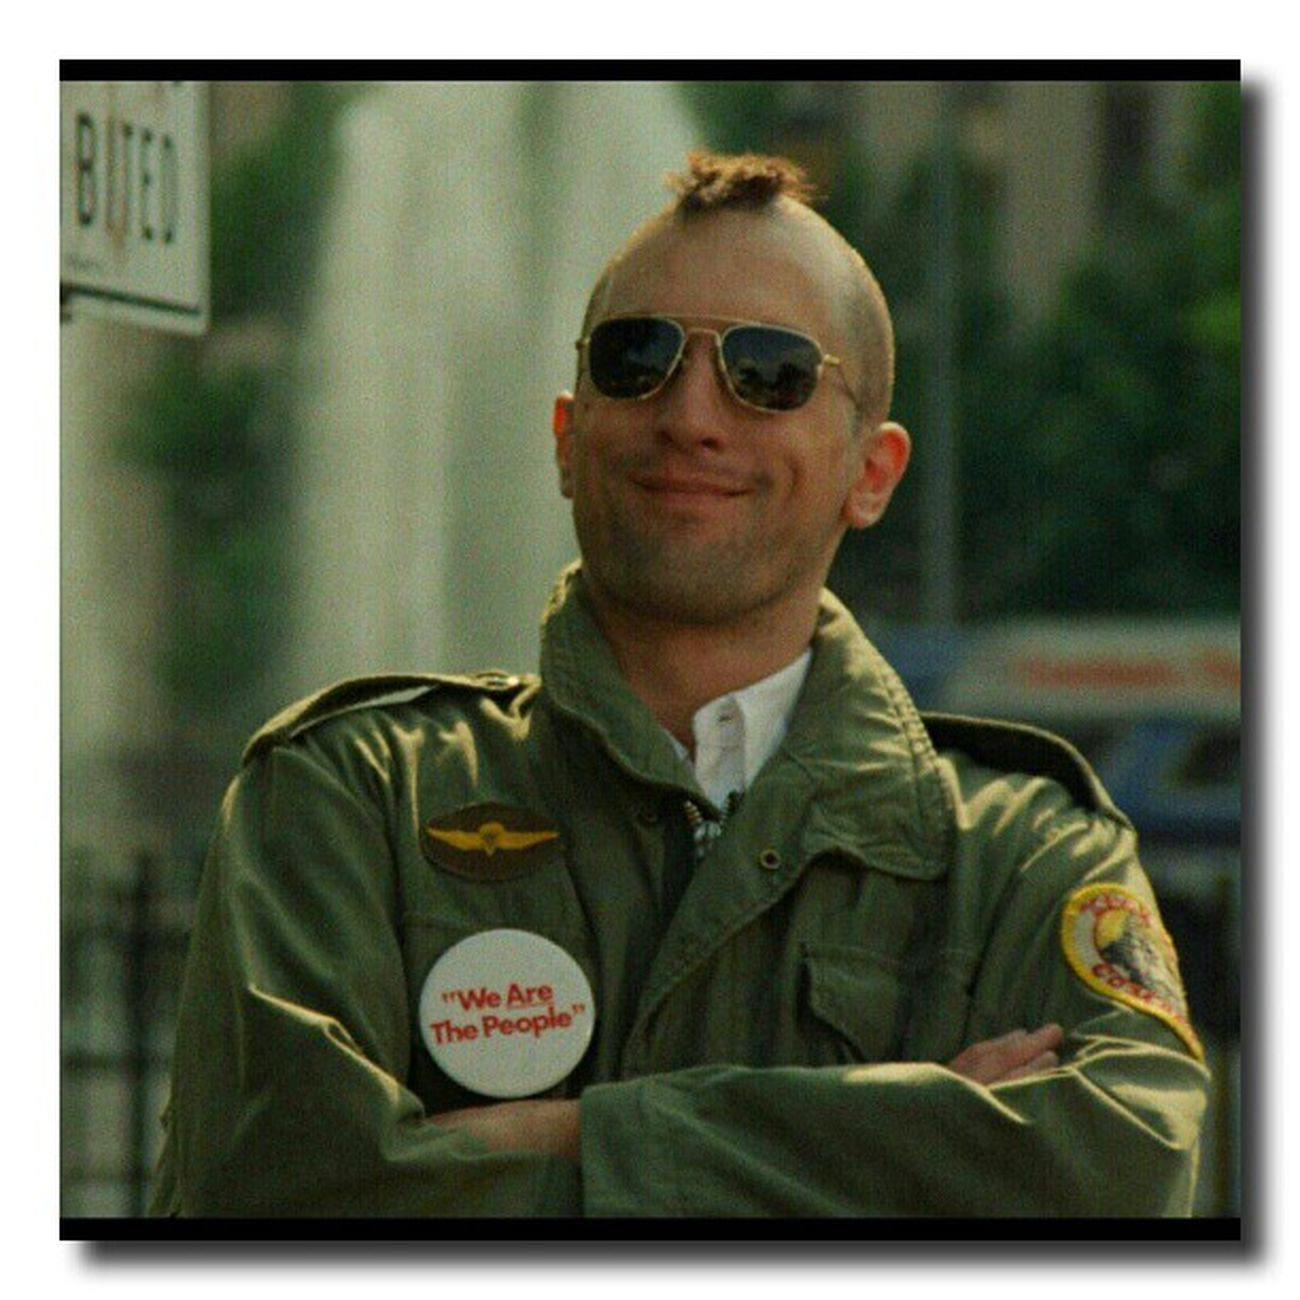 'Travis Bickle' one of my favourite movie psychos of all time' TravisBickle Travis Taxidriver Movies cult classic icon psycho RobertDeniro igtube igaddict Igers igdaily igshots iphonesia insta_pick instamood instamood instahub instagood instagrammers webstagram